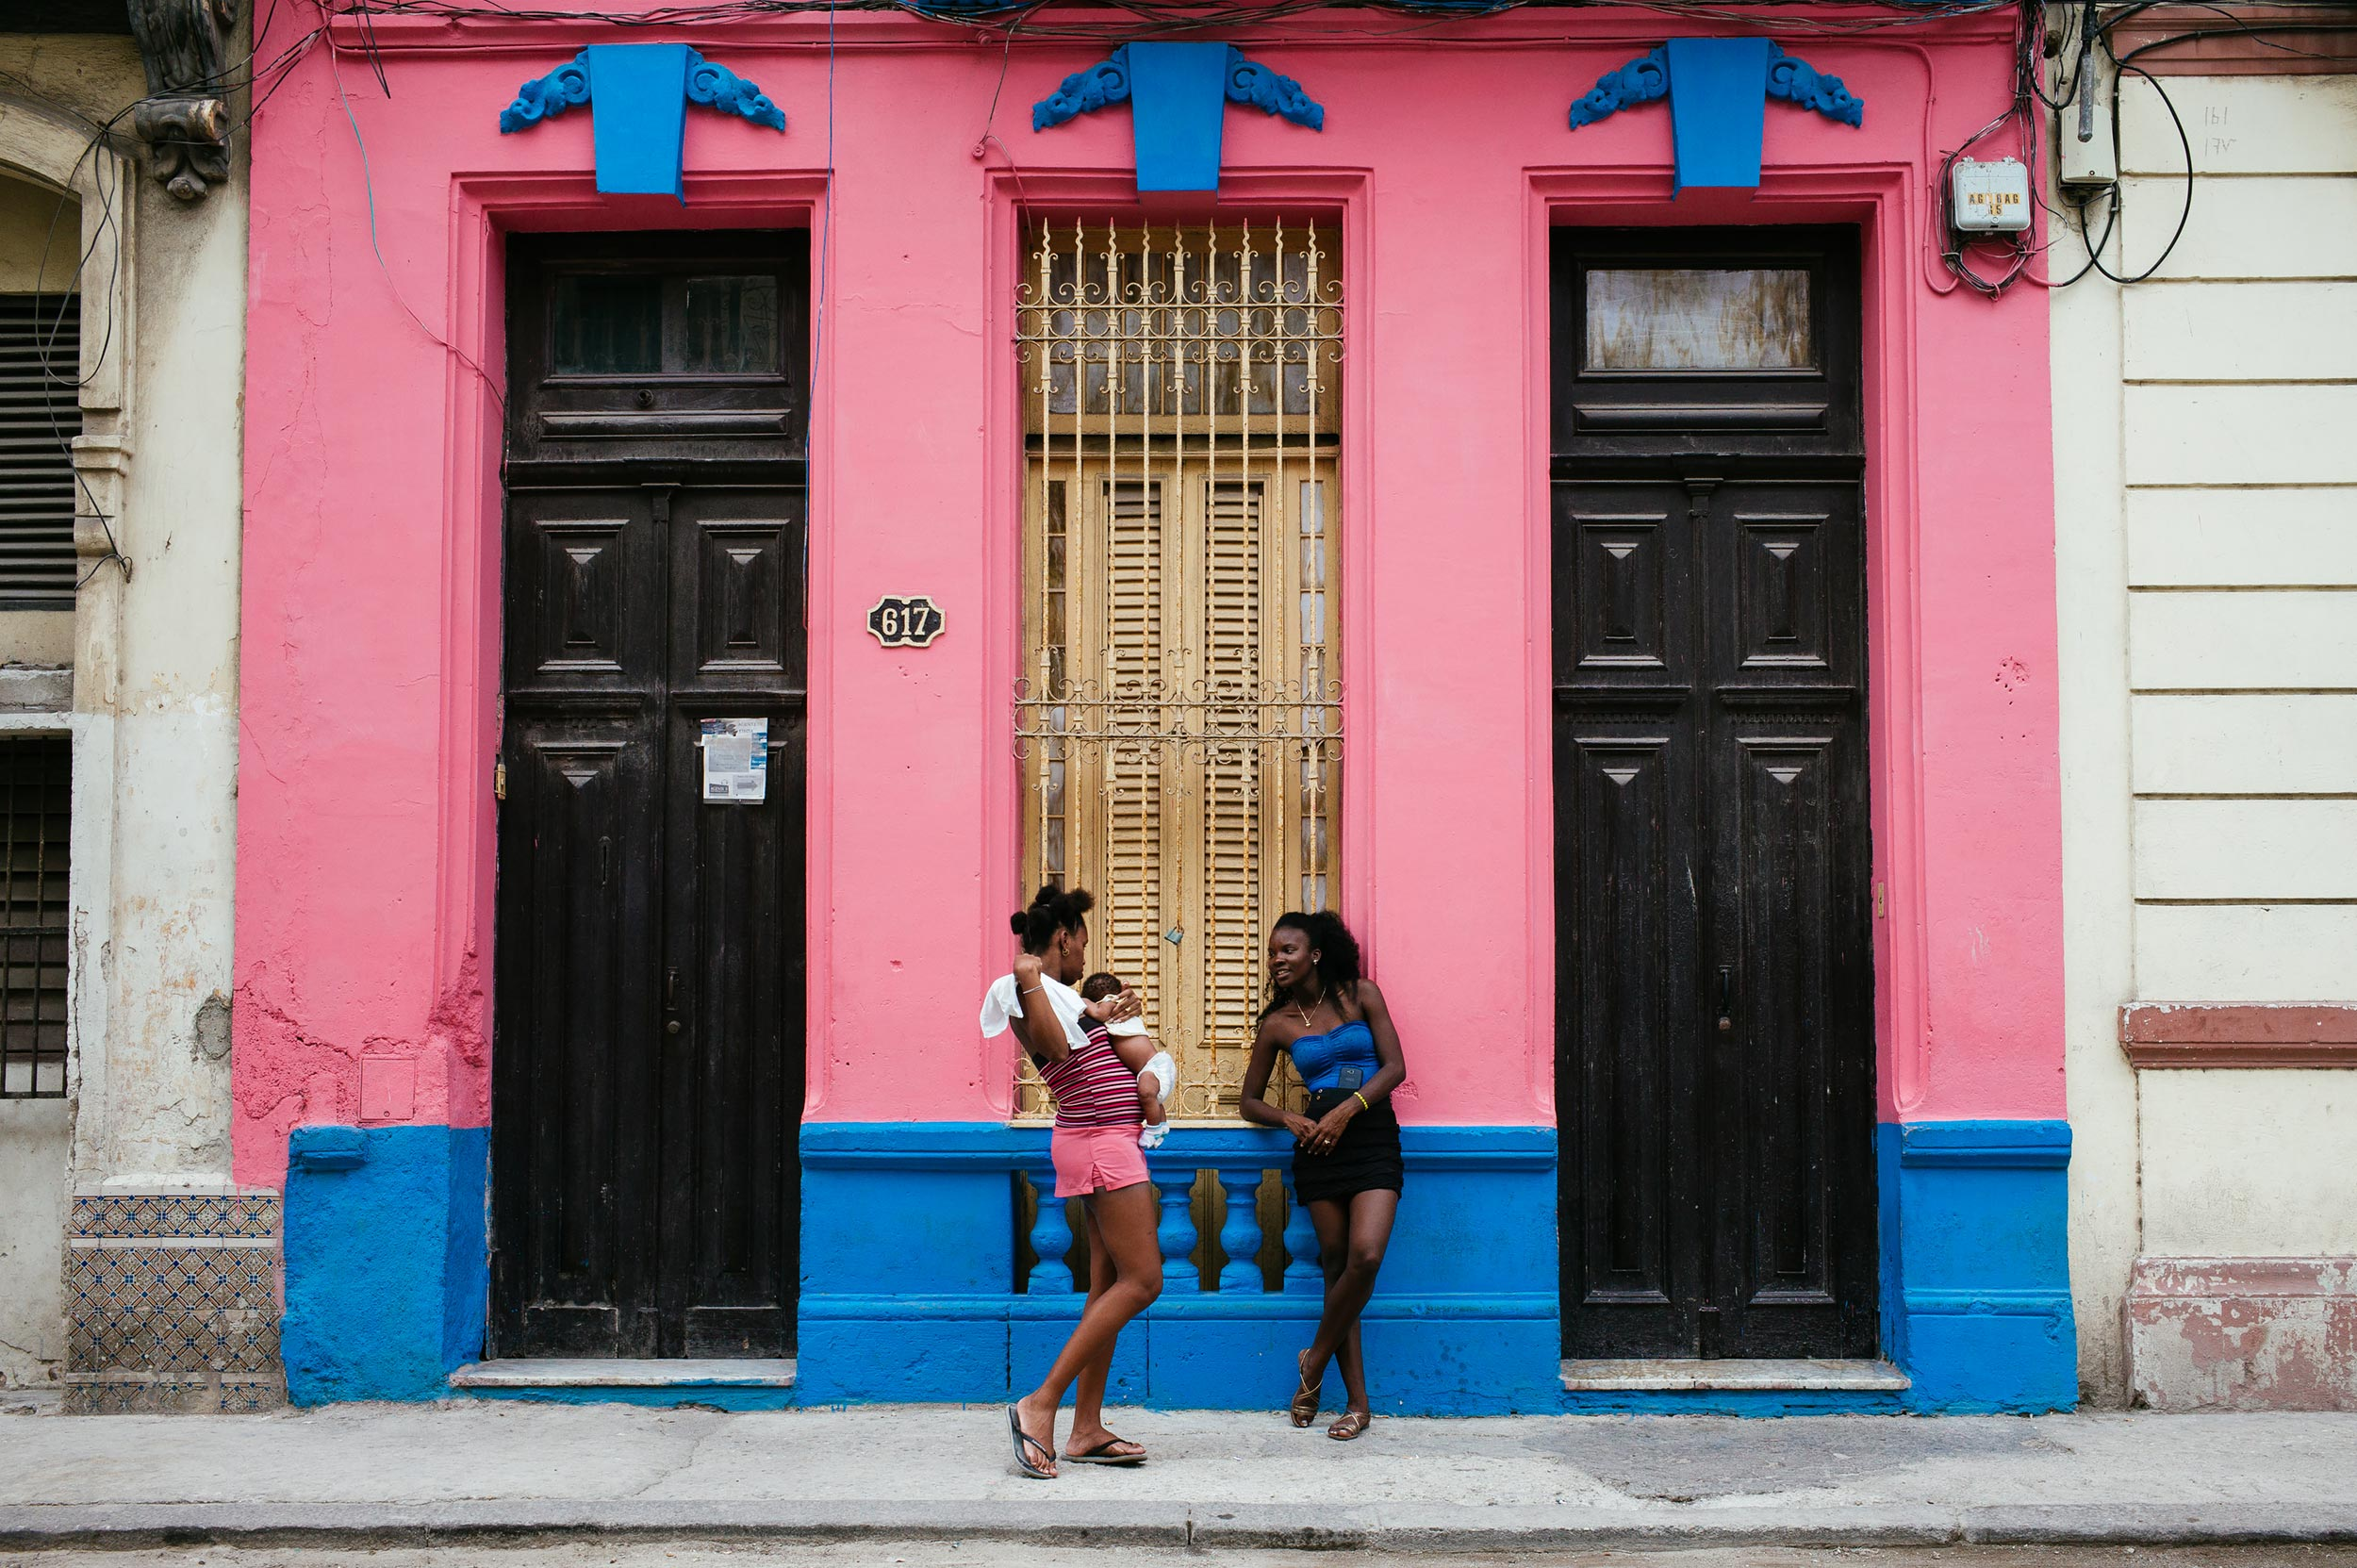 La-Habana-2016-two-ladies-standing-building-has-colors-of-their-clothes-street-photography-by-Alessandro-Avenali.jpg